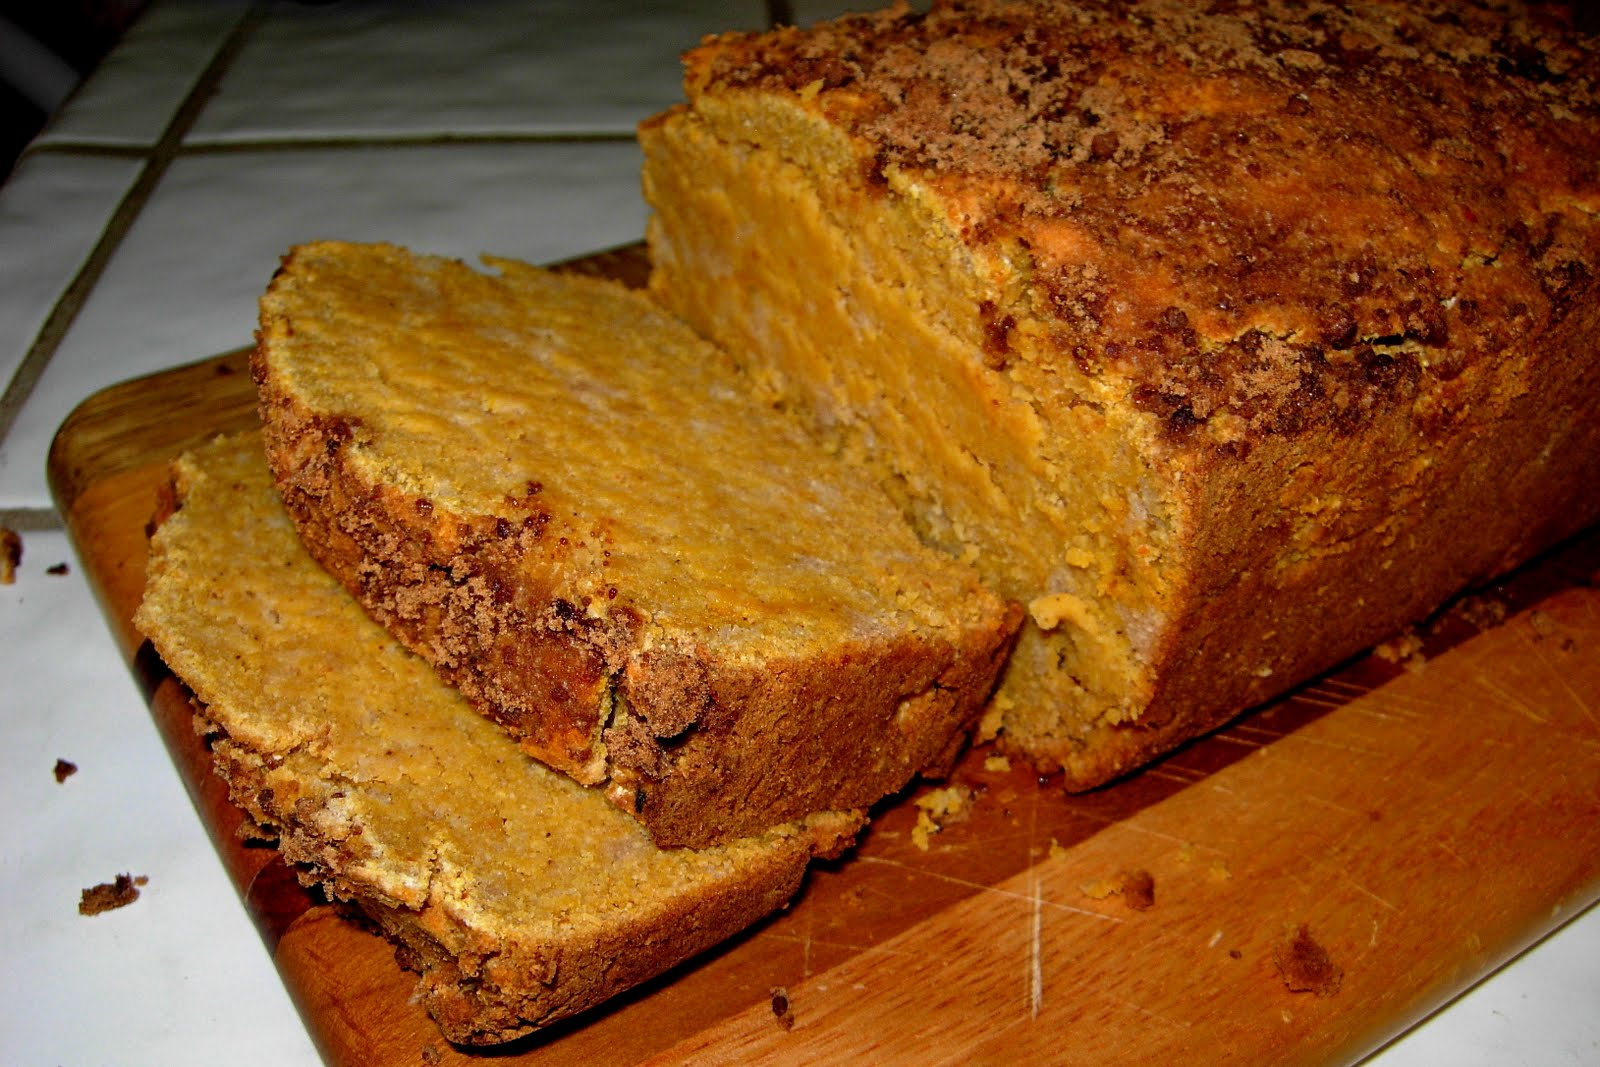 CFSCC presents: EAT THIS!: Paleo Pumpkin Bread